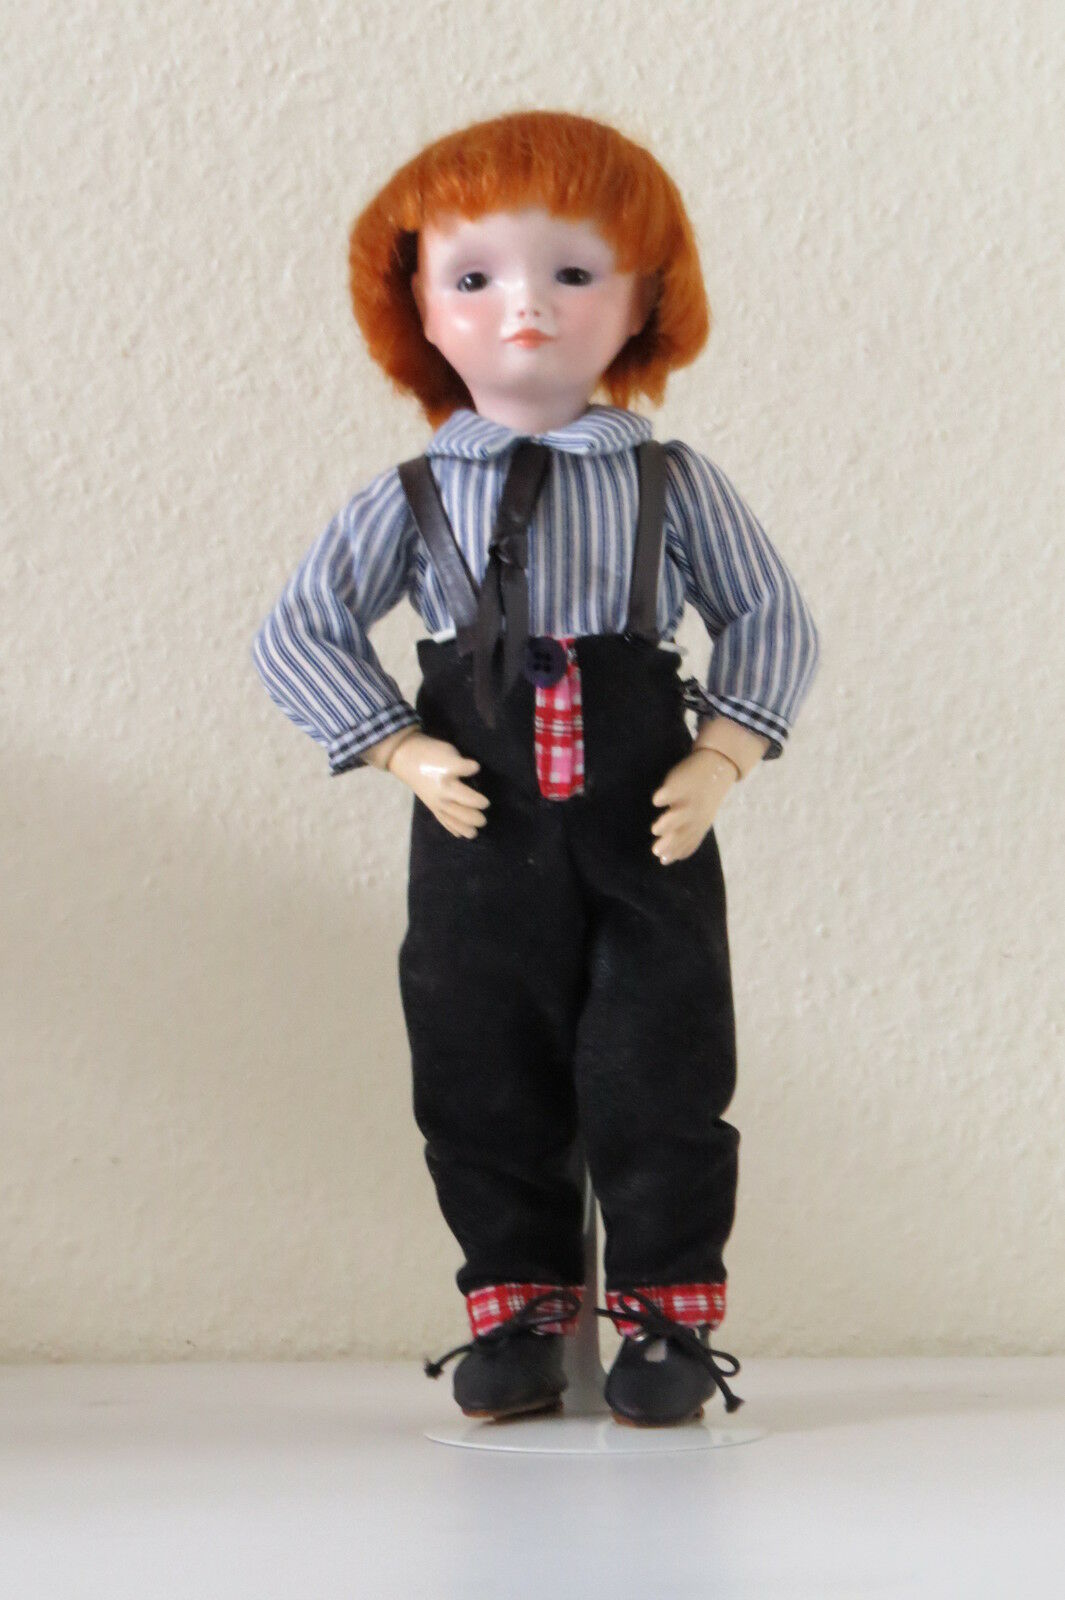 SFBJ 239 Poulbot 28 cm, 11 Inch Réf  C Poupée Ancienne Reproduction Antique doll